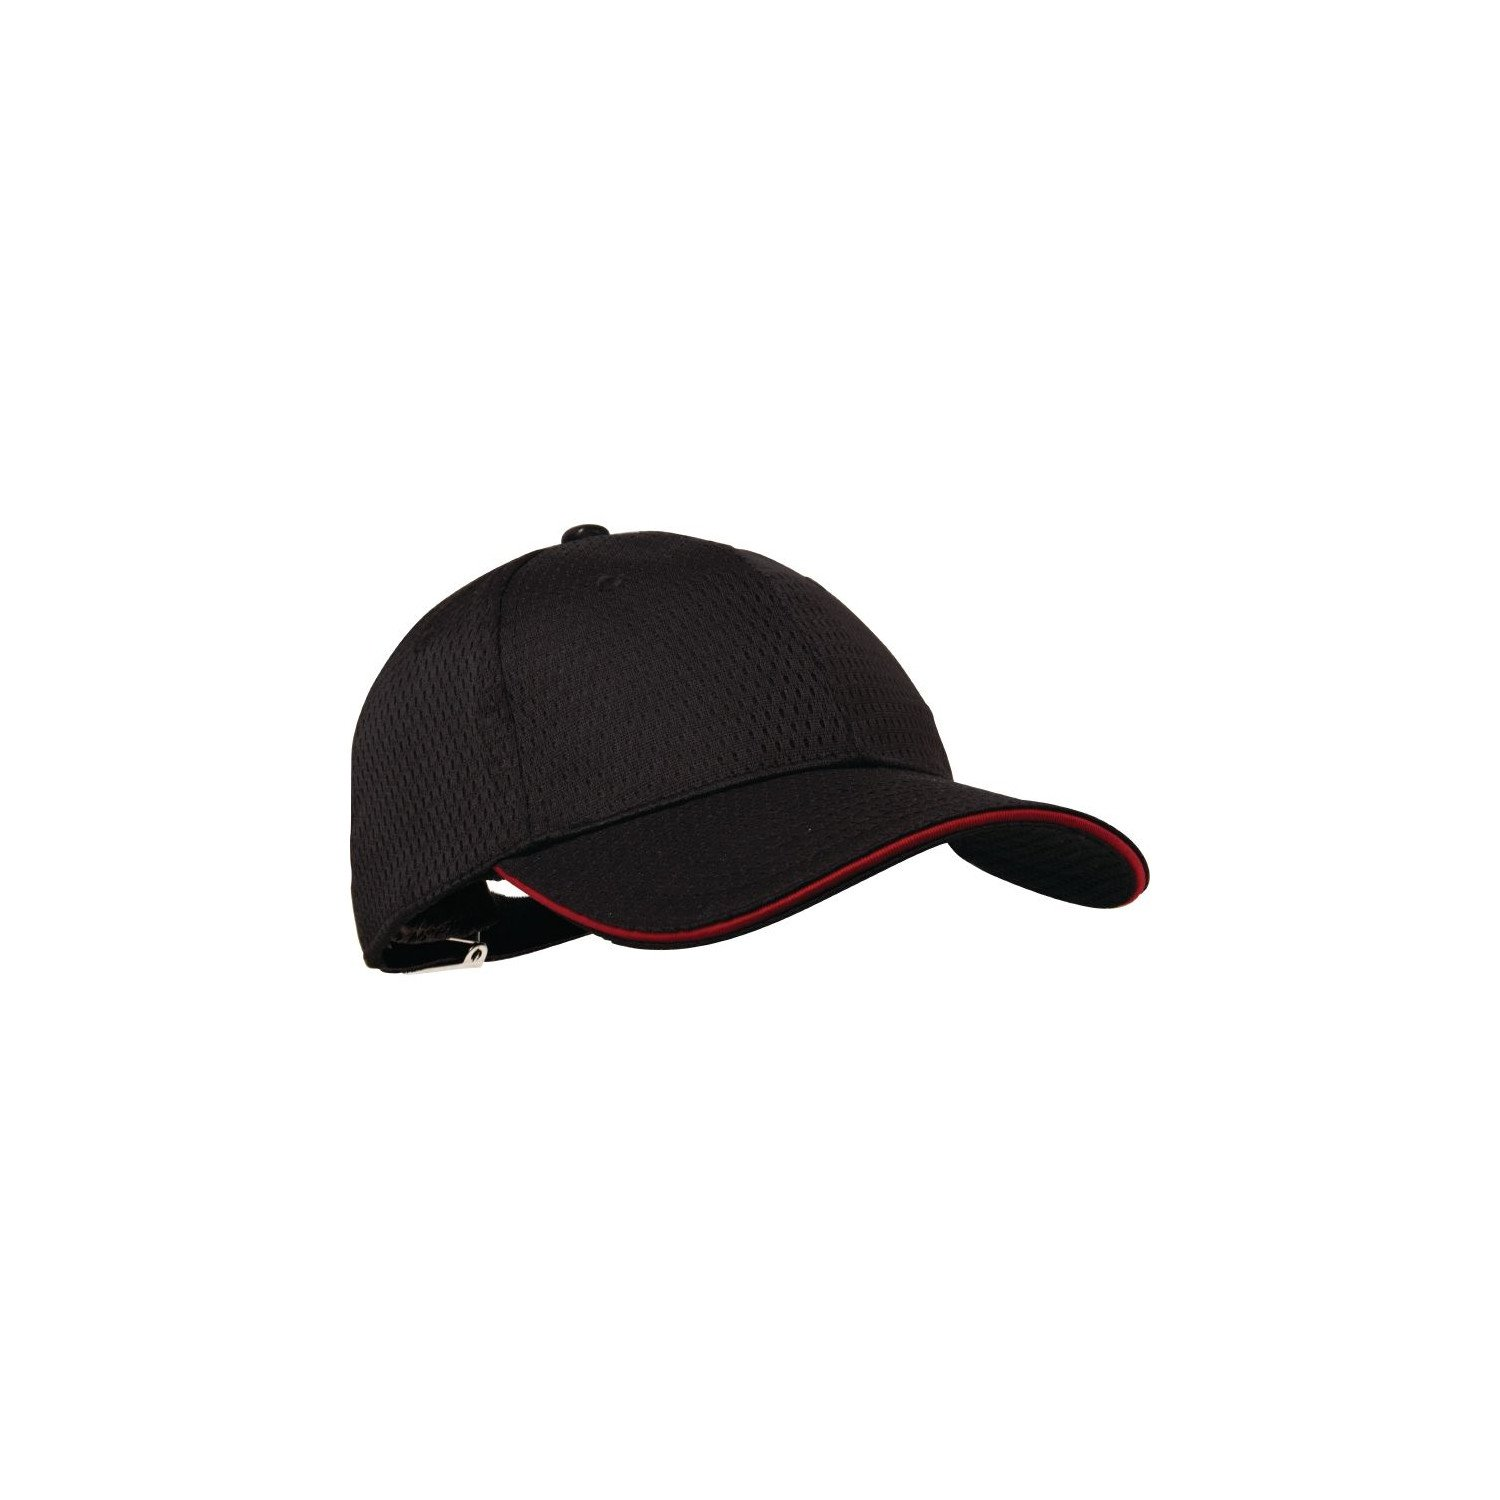 Casquette Cool Vent baseball Chef Works rouge taille unique COLOUR BY CHEF WORKS Nisbets Vêtements